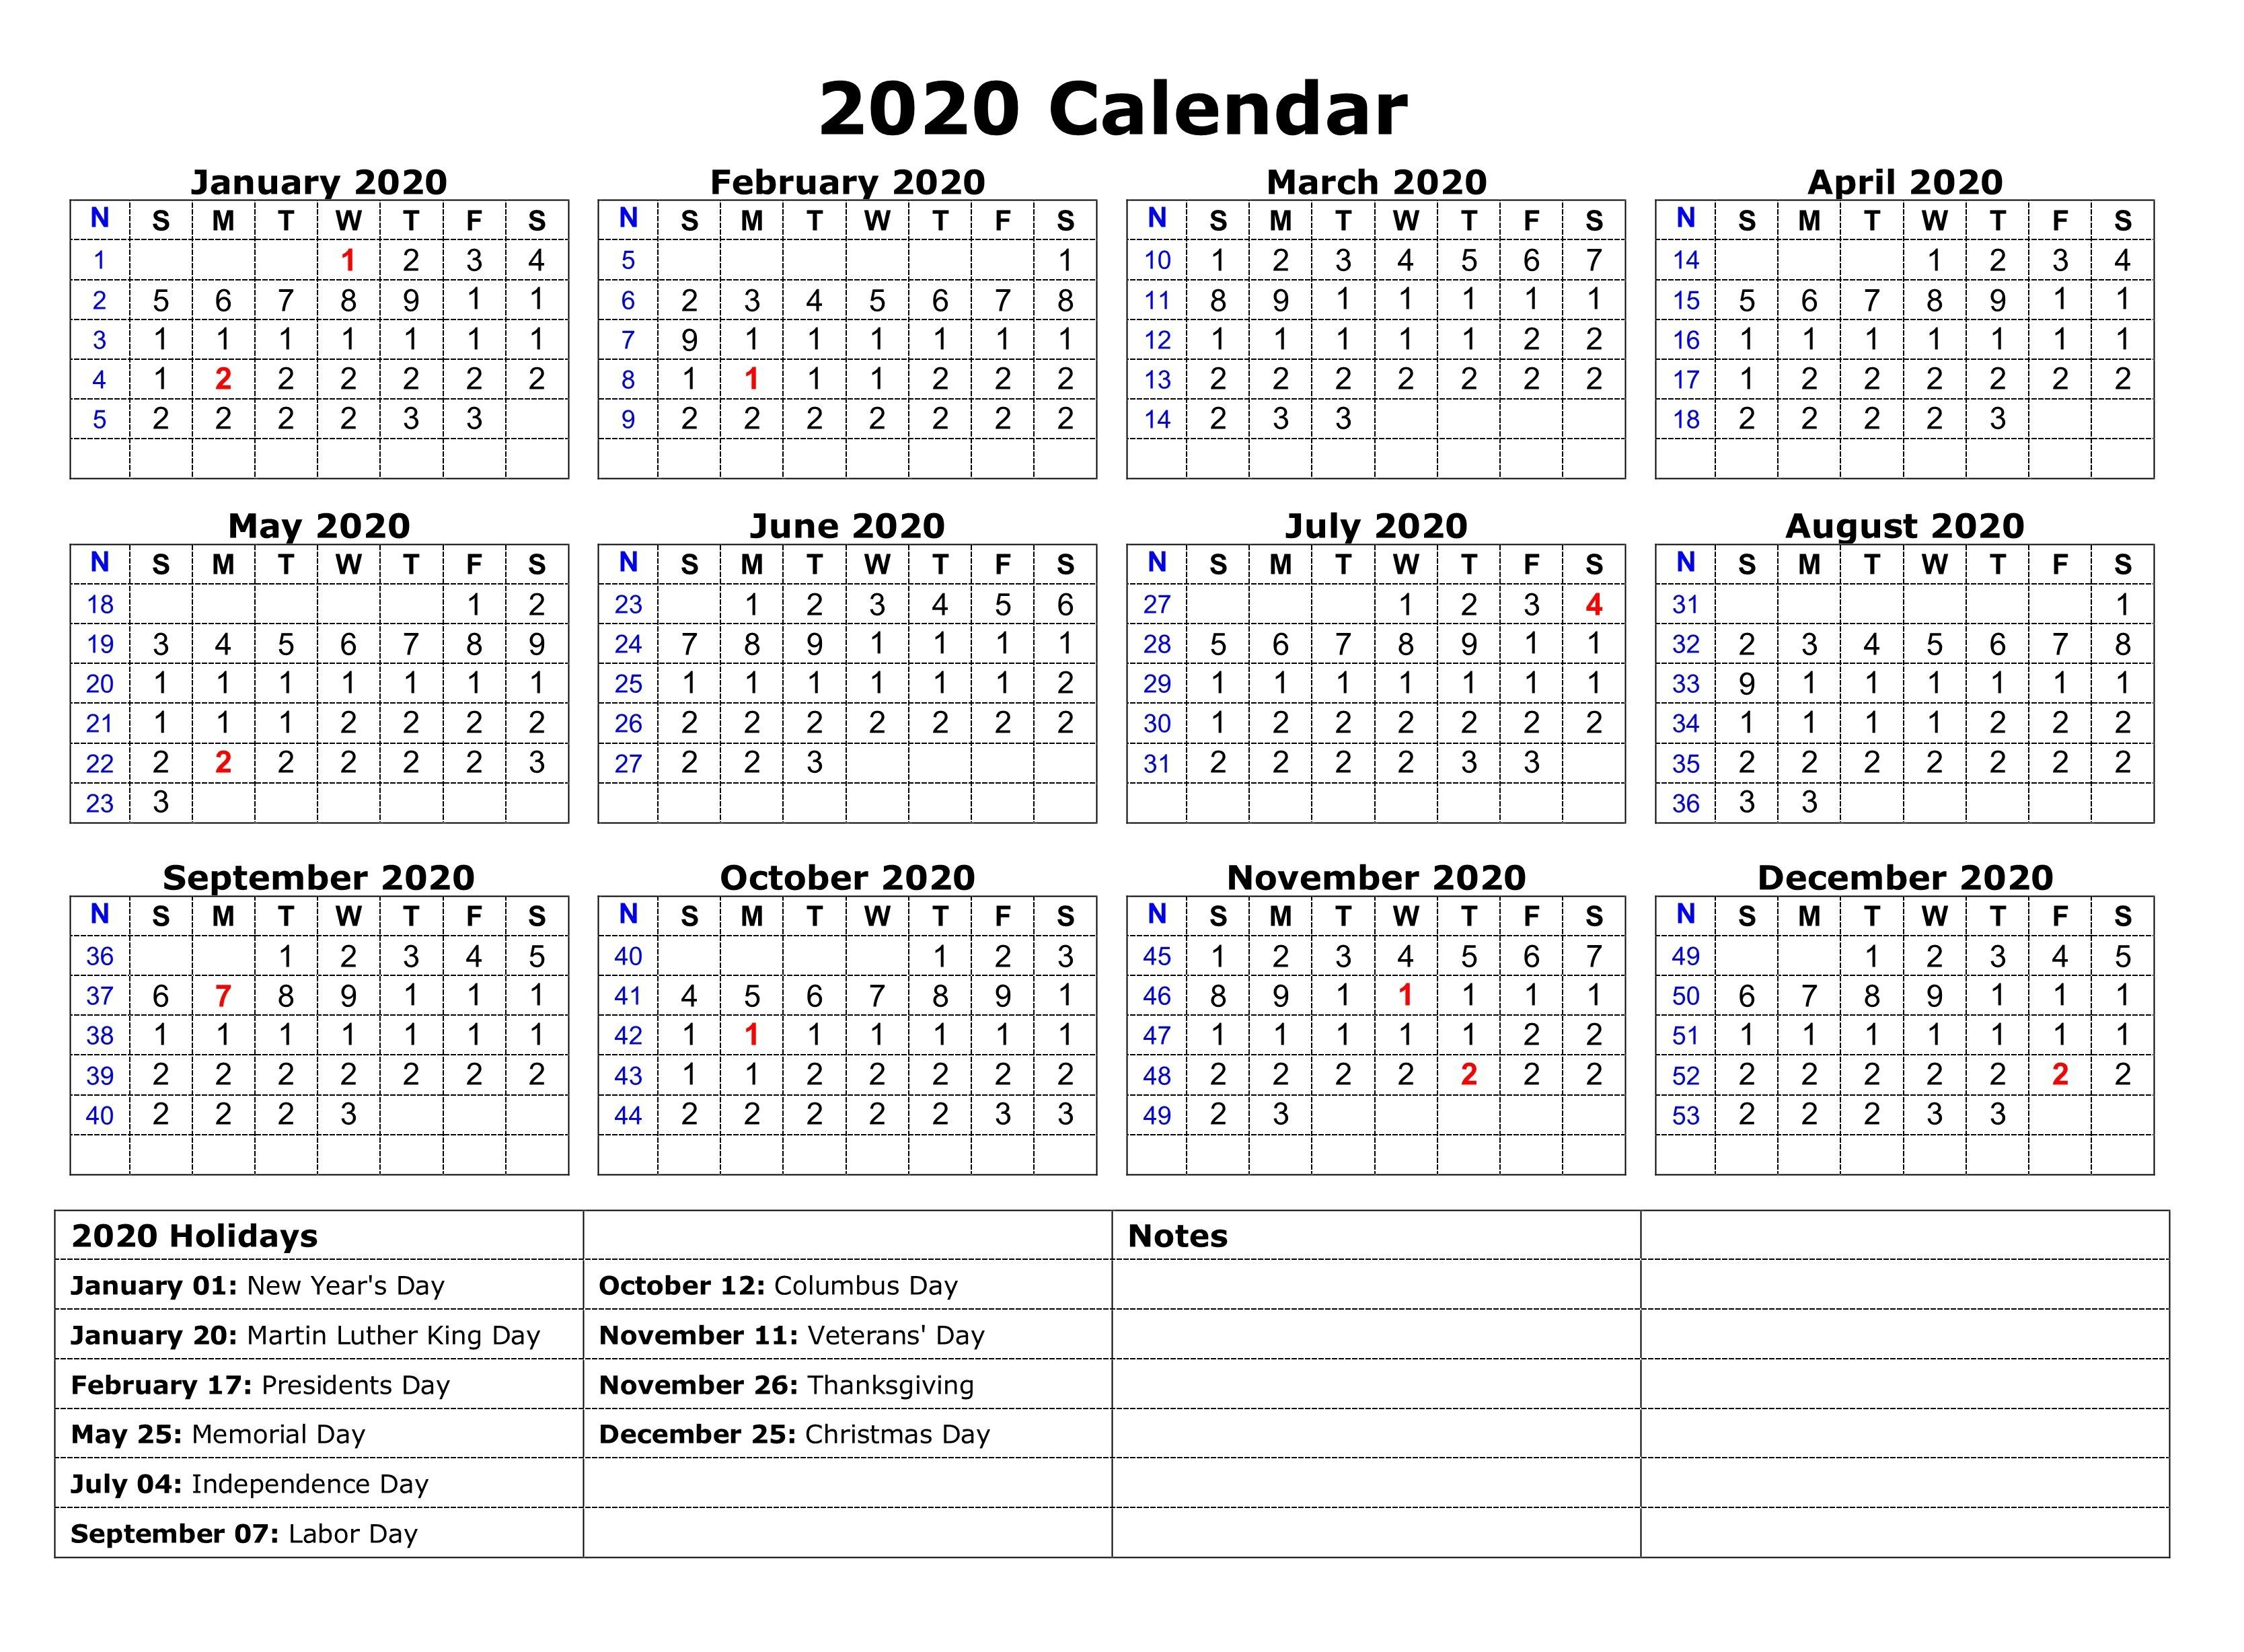 2020 Us Calendar With Holidays Printable - Wpa.wpart.co